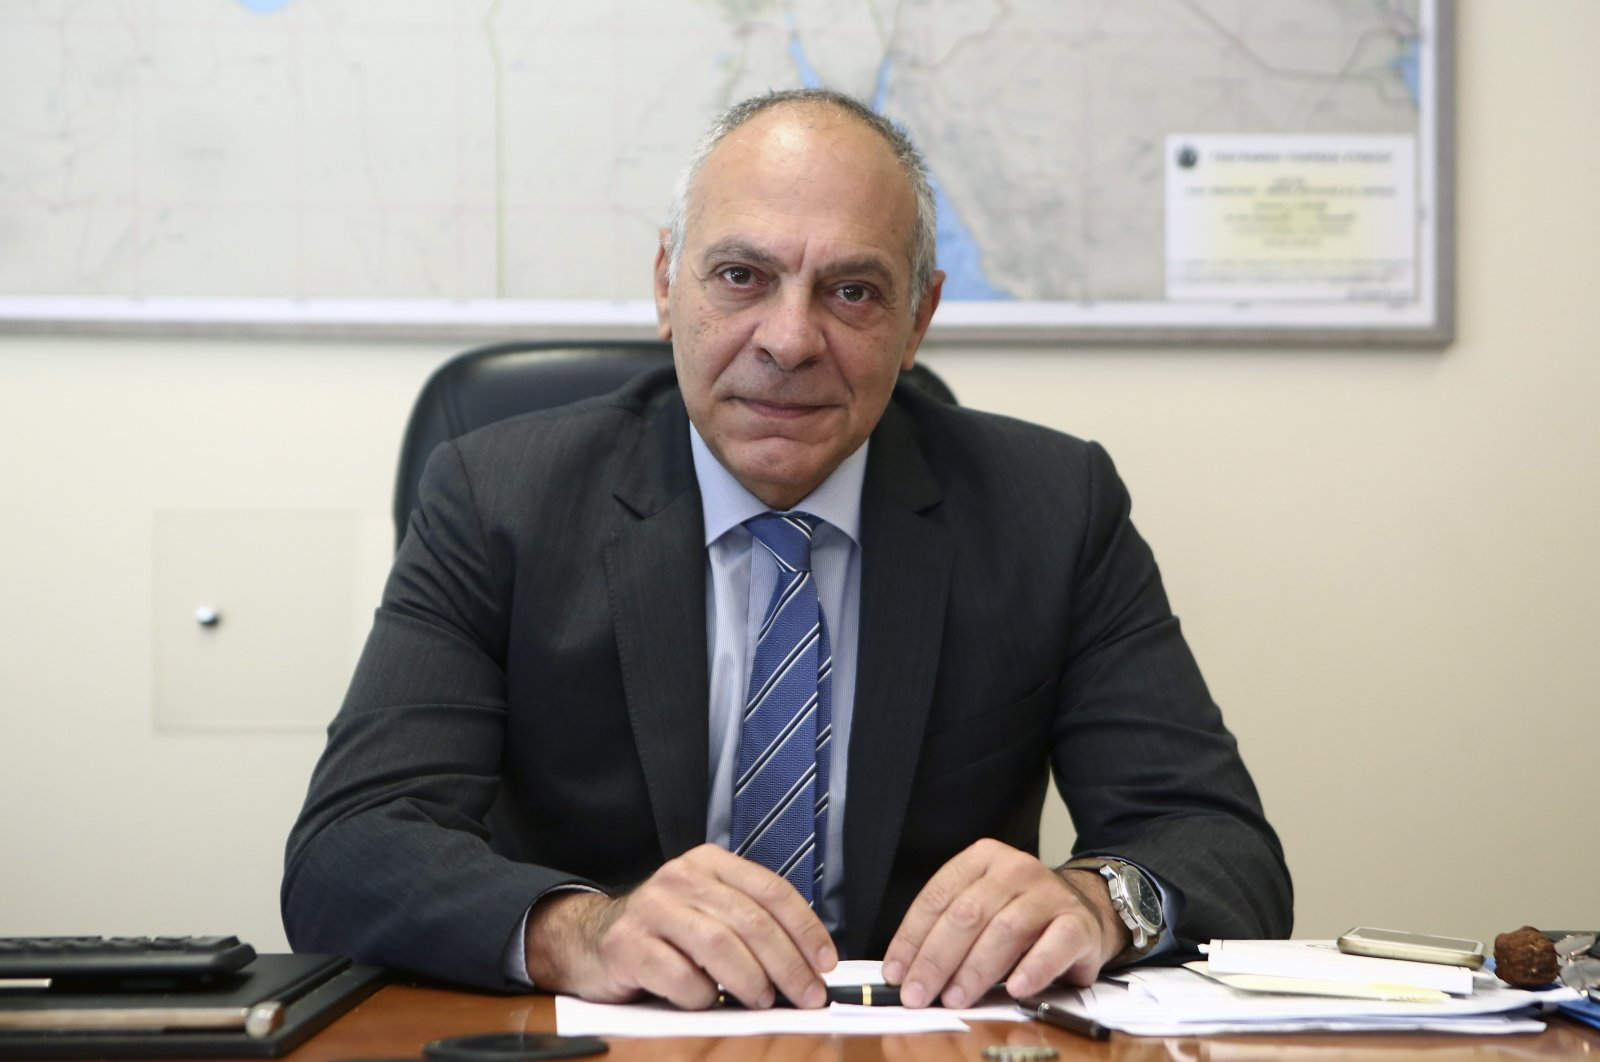 Alexandros Diakopoulos, the top Greek national security adviser, poses for a photograph in Athens, Greece, July 10, 2020. (AP Photo)